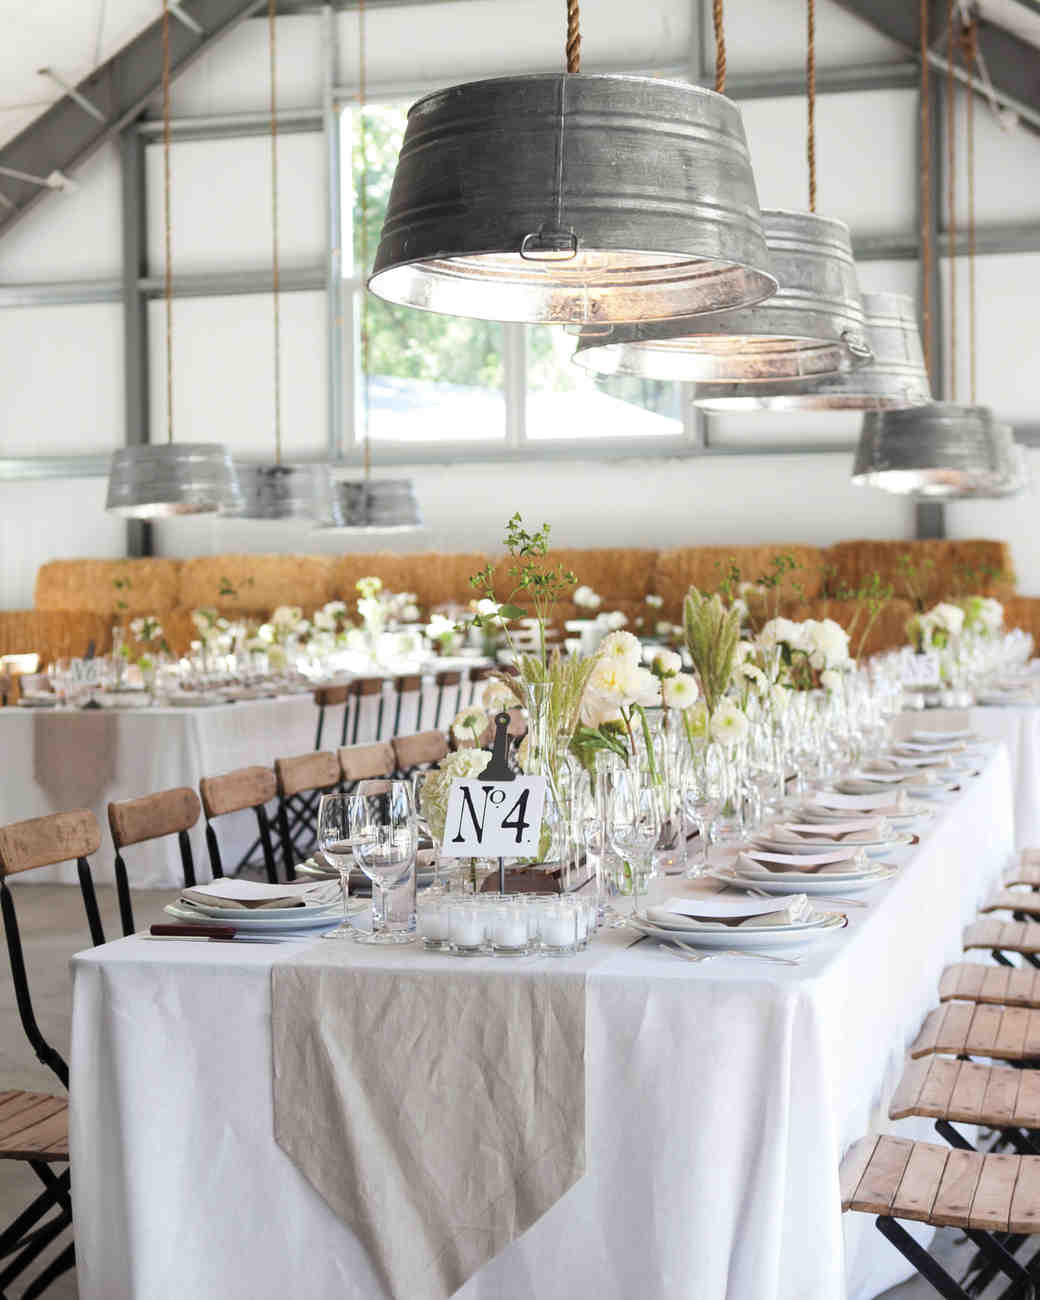 7 Barn Wedding Decoration Ideas For A Spring Wedding: 47 Hanging Wedding Décor Ideas